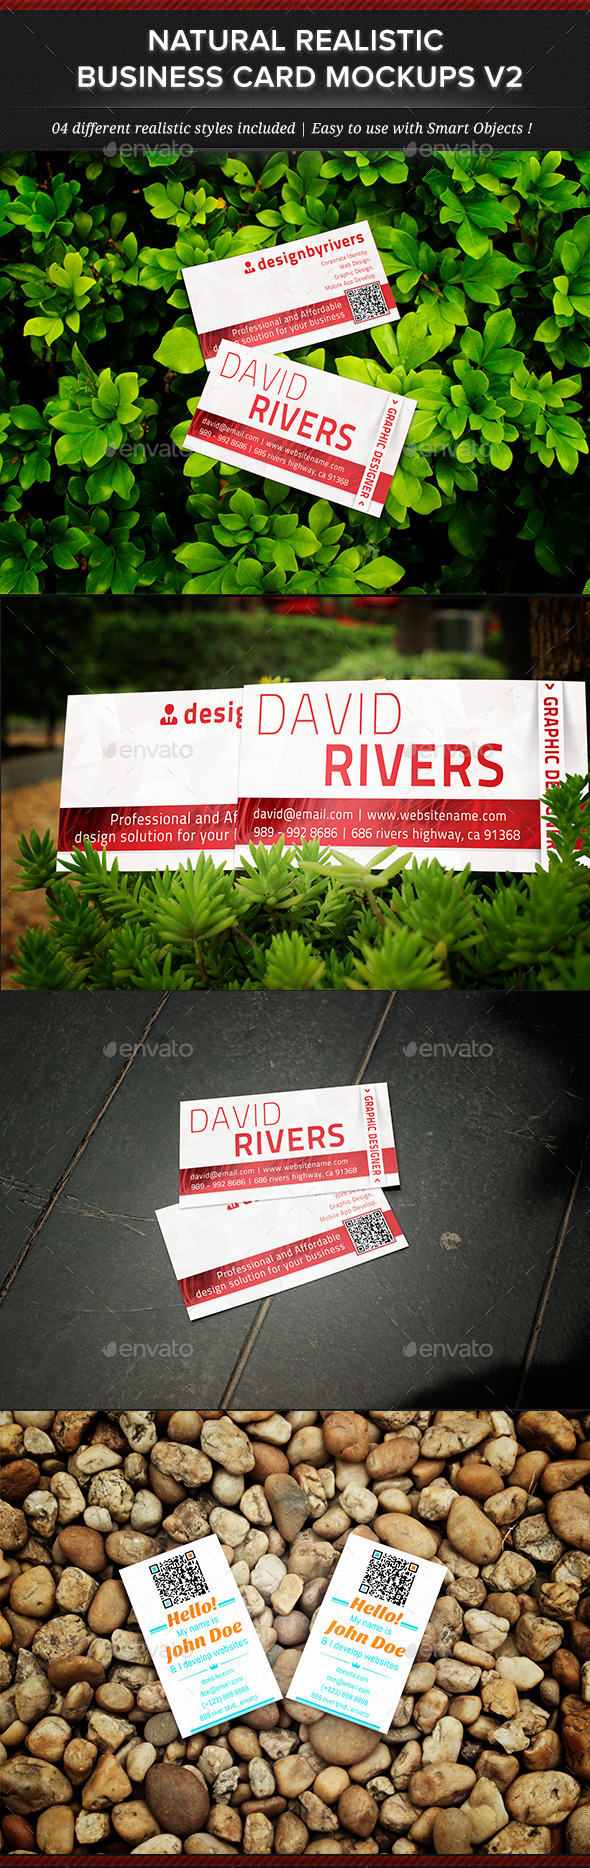 Natural Realistic Business Card Mockup V2 - Business Cards Print